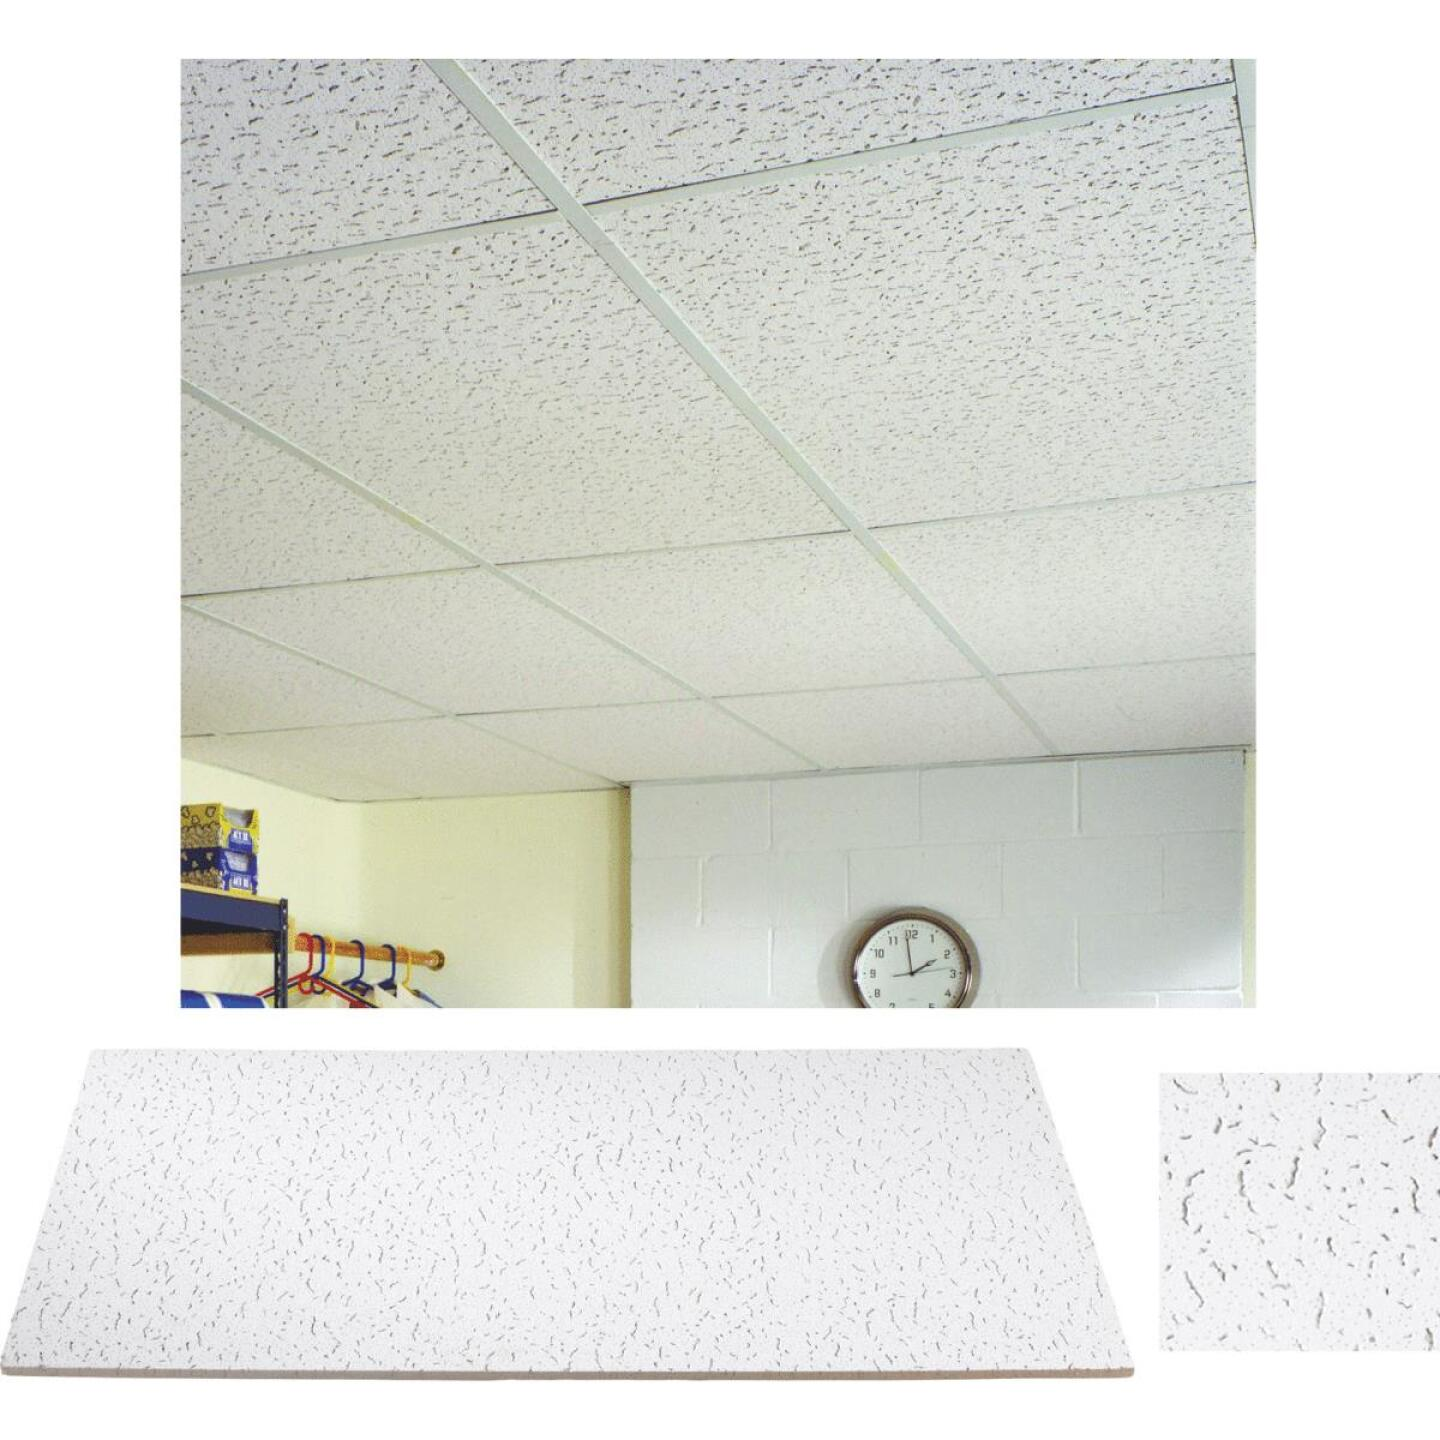 Fifth Avenue 2 Ft. x 4 Ft. White Mineral Fiber Square Edge Ceiling Tile (8-Count) Image 1